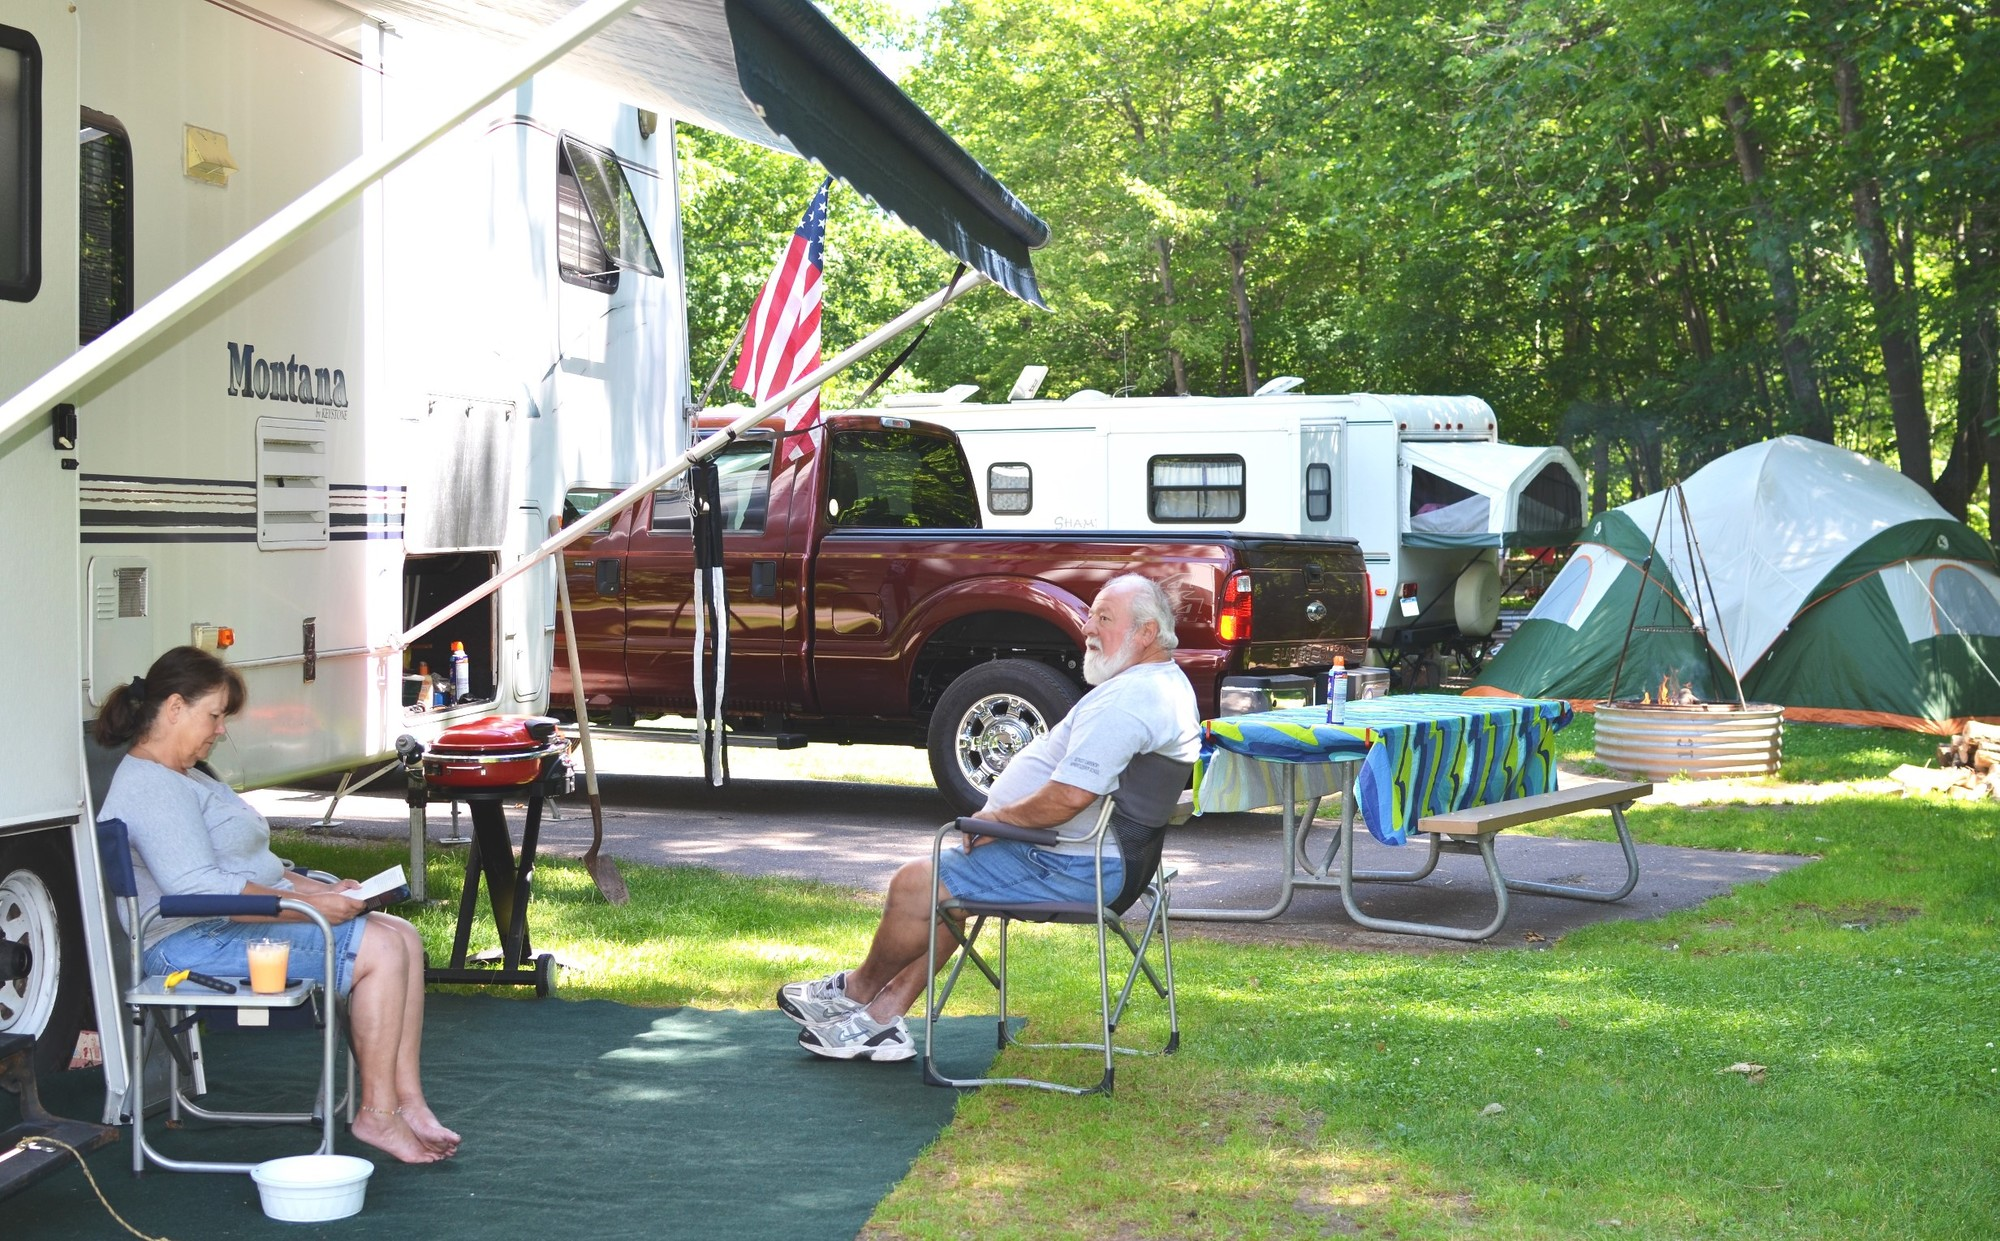 Visitors enjoy a lazy Saturday afternoon at F.J. McLain State Park in Houghton County.